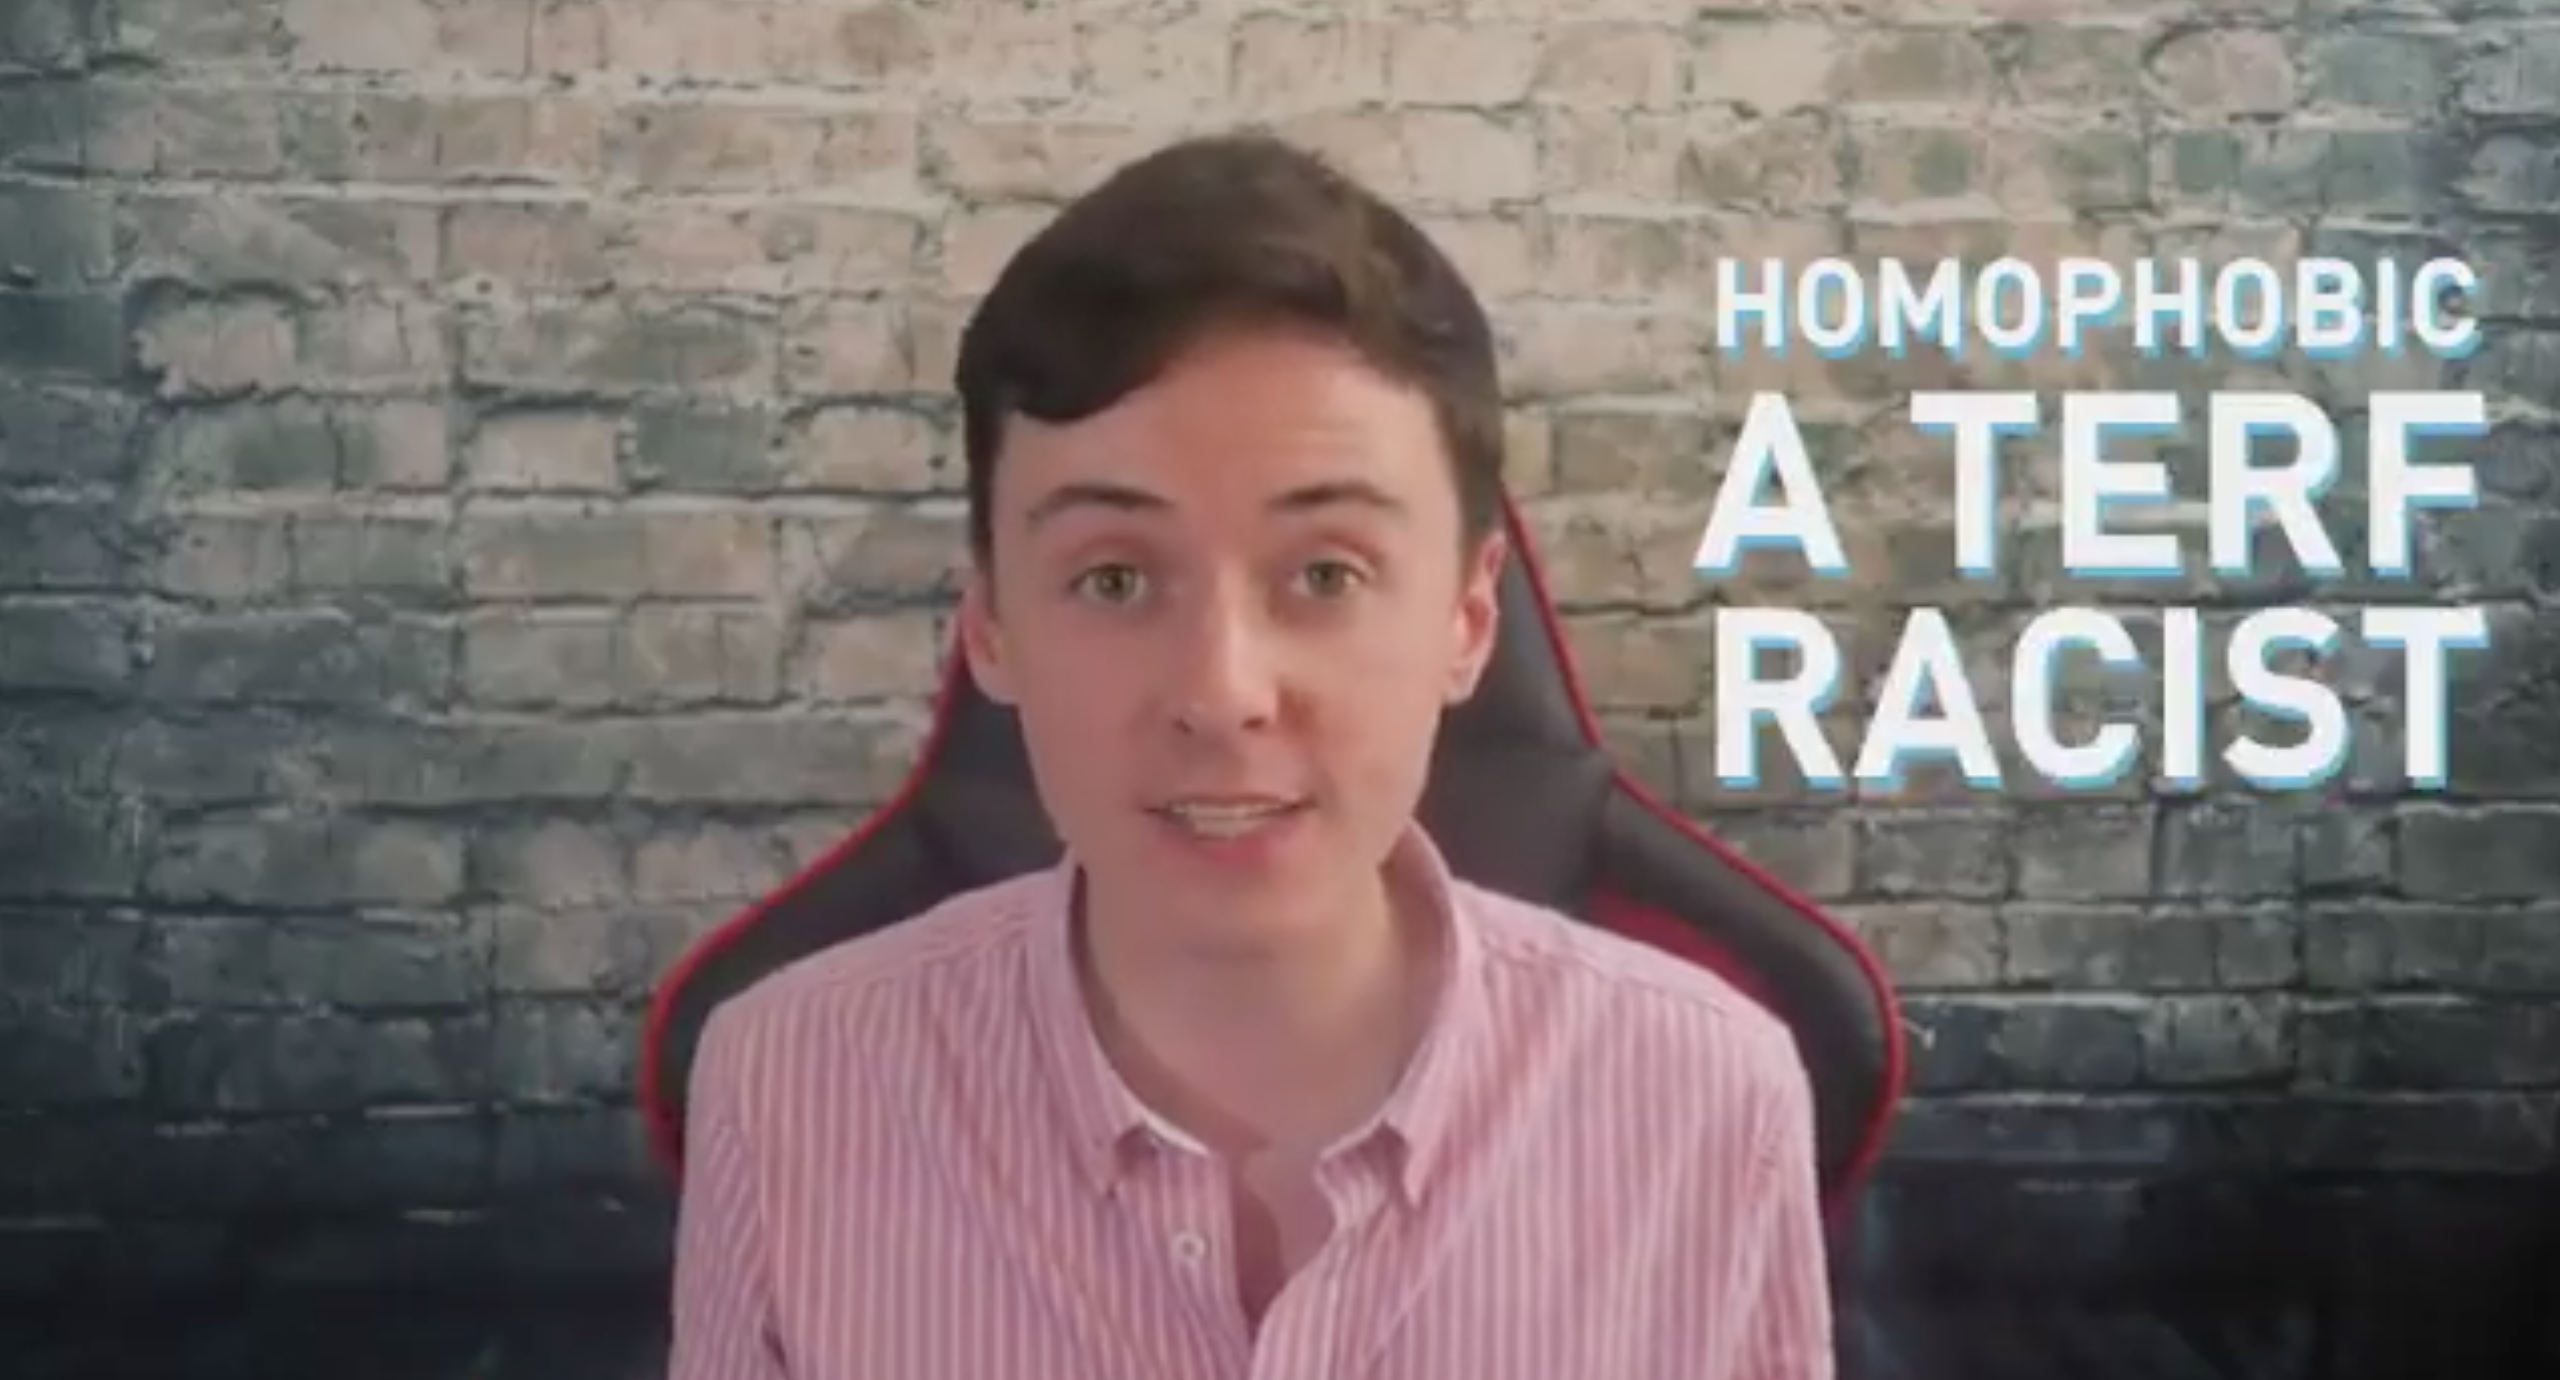 """Darren Grimes, a gay British political commentator, launched a safe space-type group for, he billed, castaways called """"homophobic"""" and racist"""". (Screen capture via Twitter)"""